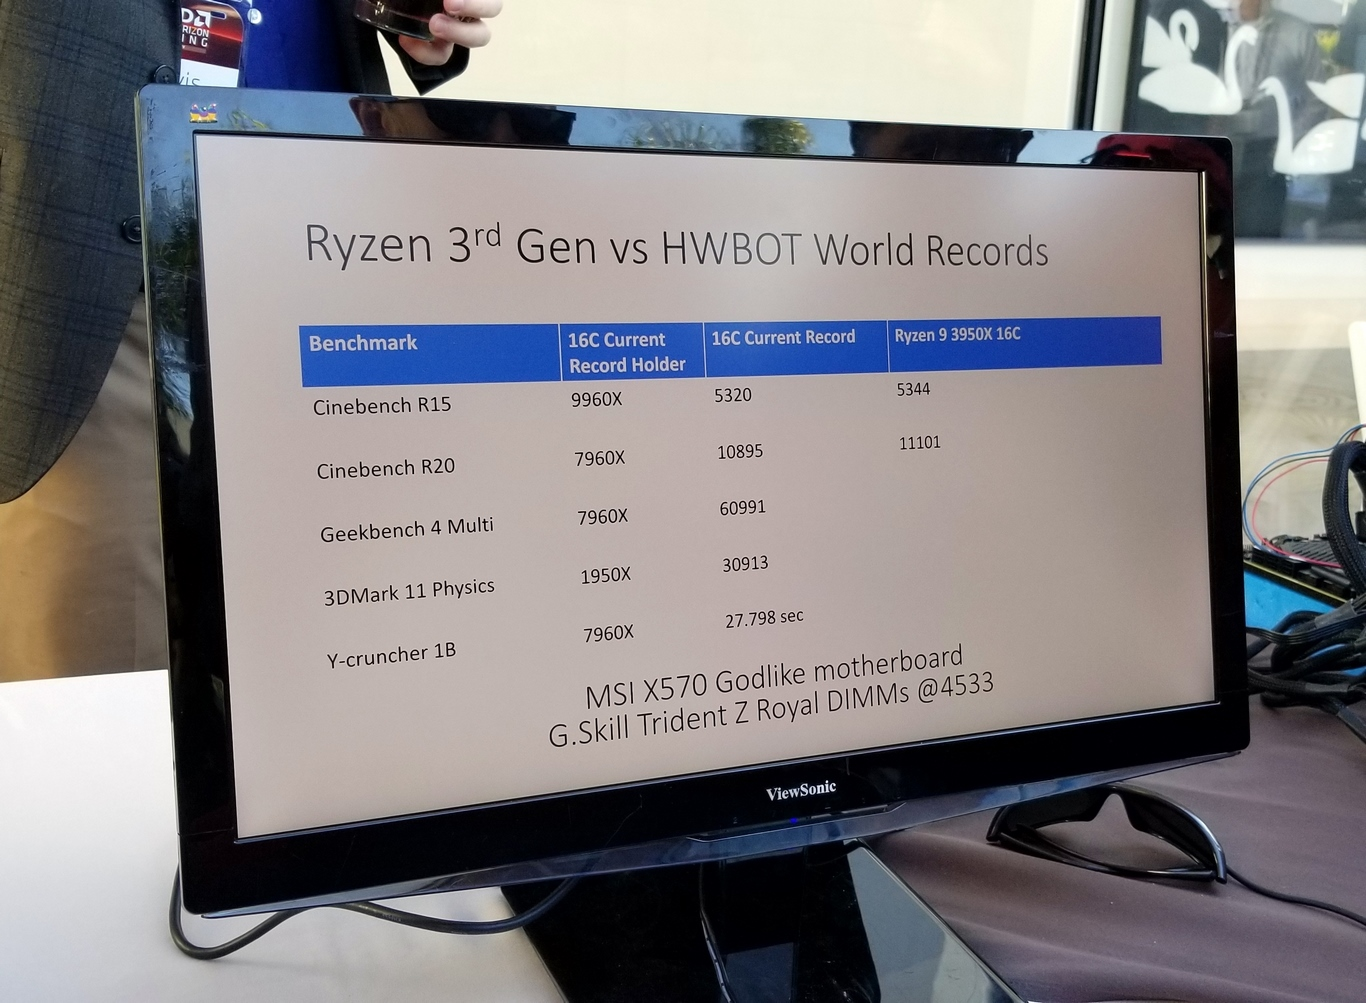 AMD Zen 2 Architecture Explored: What Makes Ryzen 3000 So Powerful